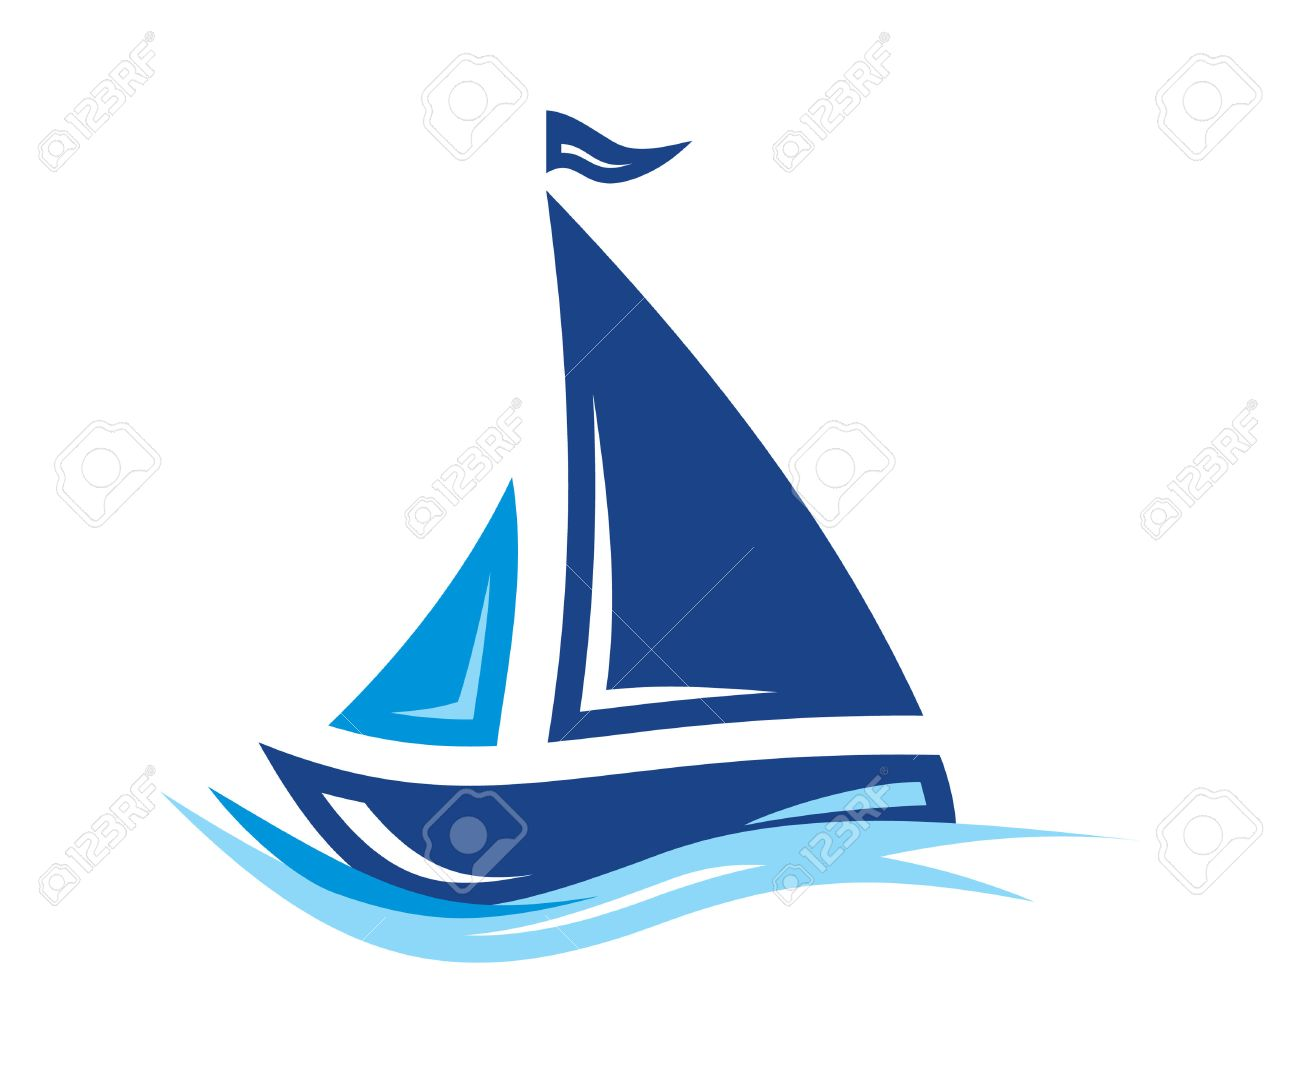 61,667 Sailboat Stock Vector Illustration And Royalty Free Sailboat.